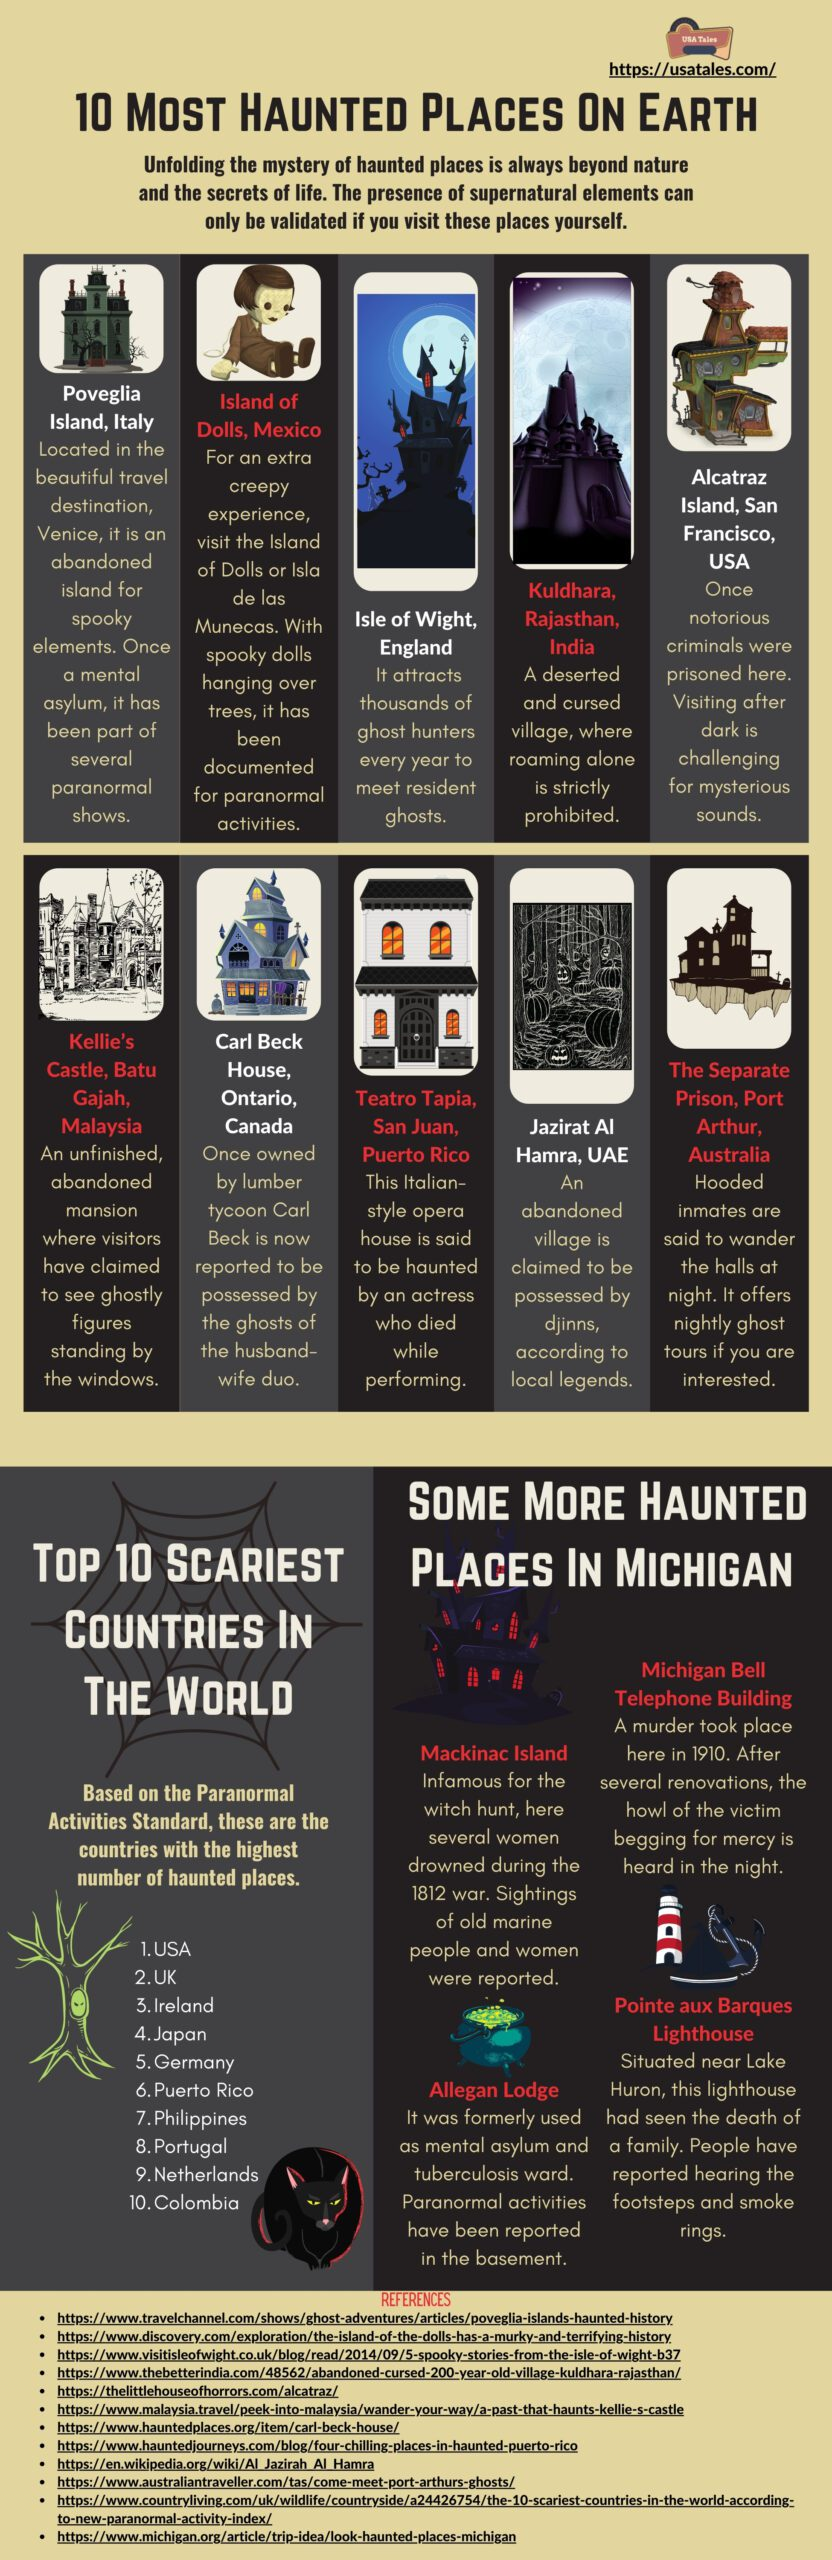 10 Most Haunted Places On Earth